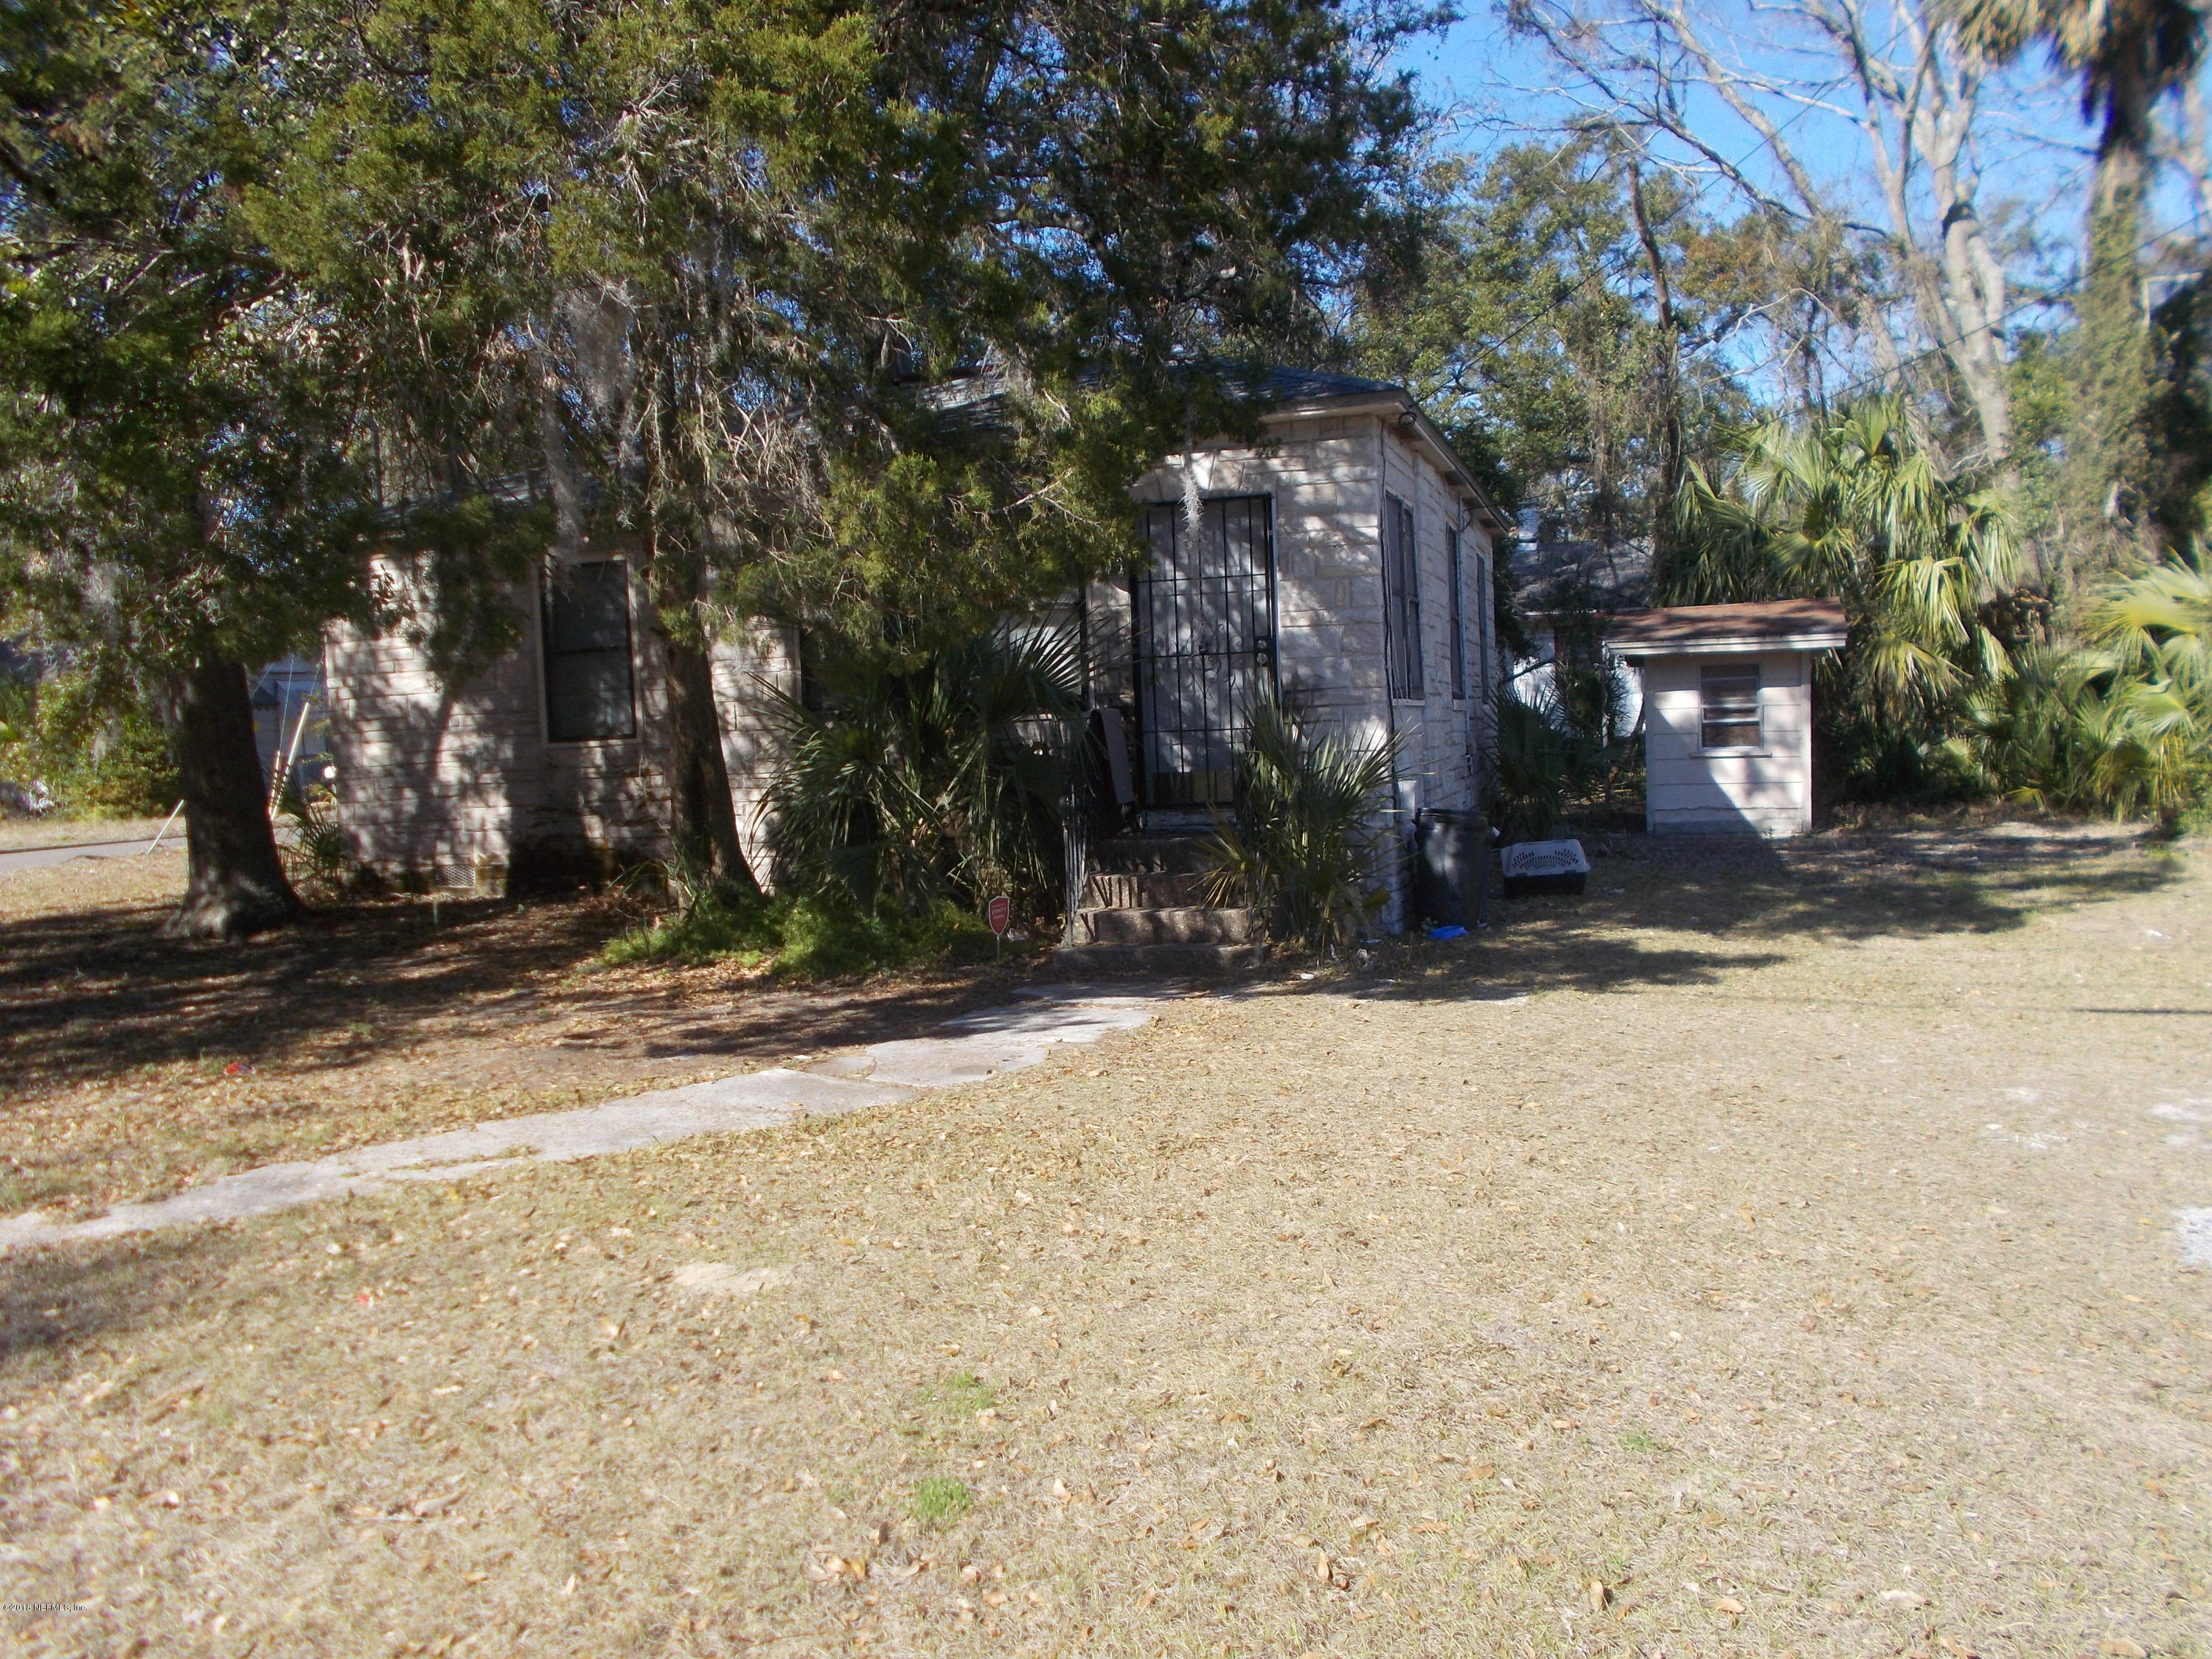 741 60TH, JACKSONVILLE, FLORIDA 32208, 2 Bedrooms Bedrooms, ,1 BathroomBathrooms,Residential - single family,For sale,60TH,919789